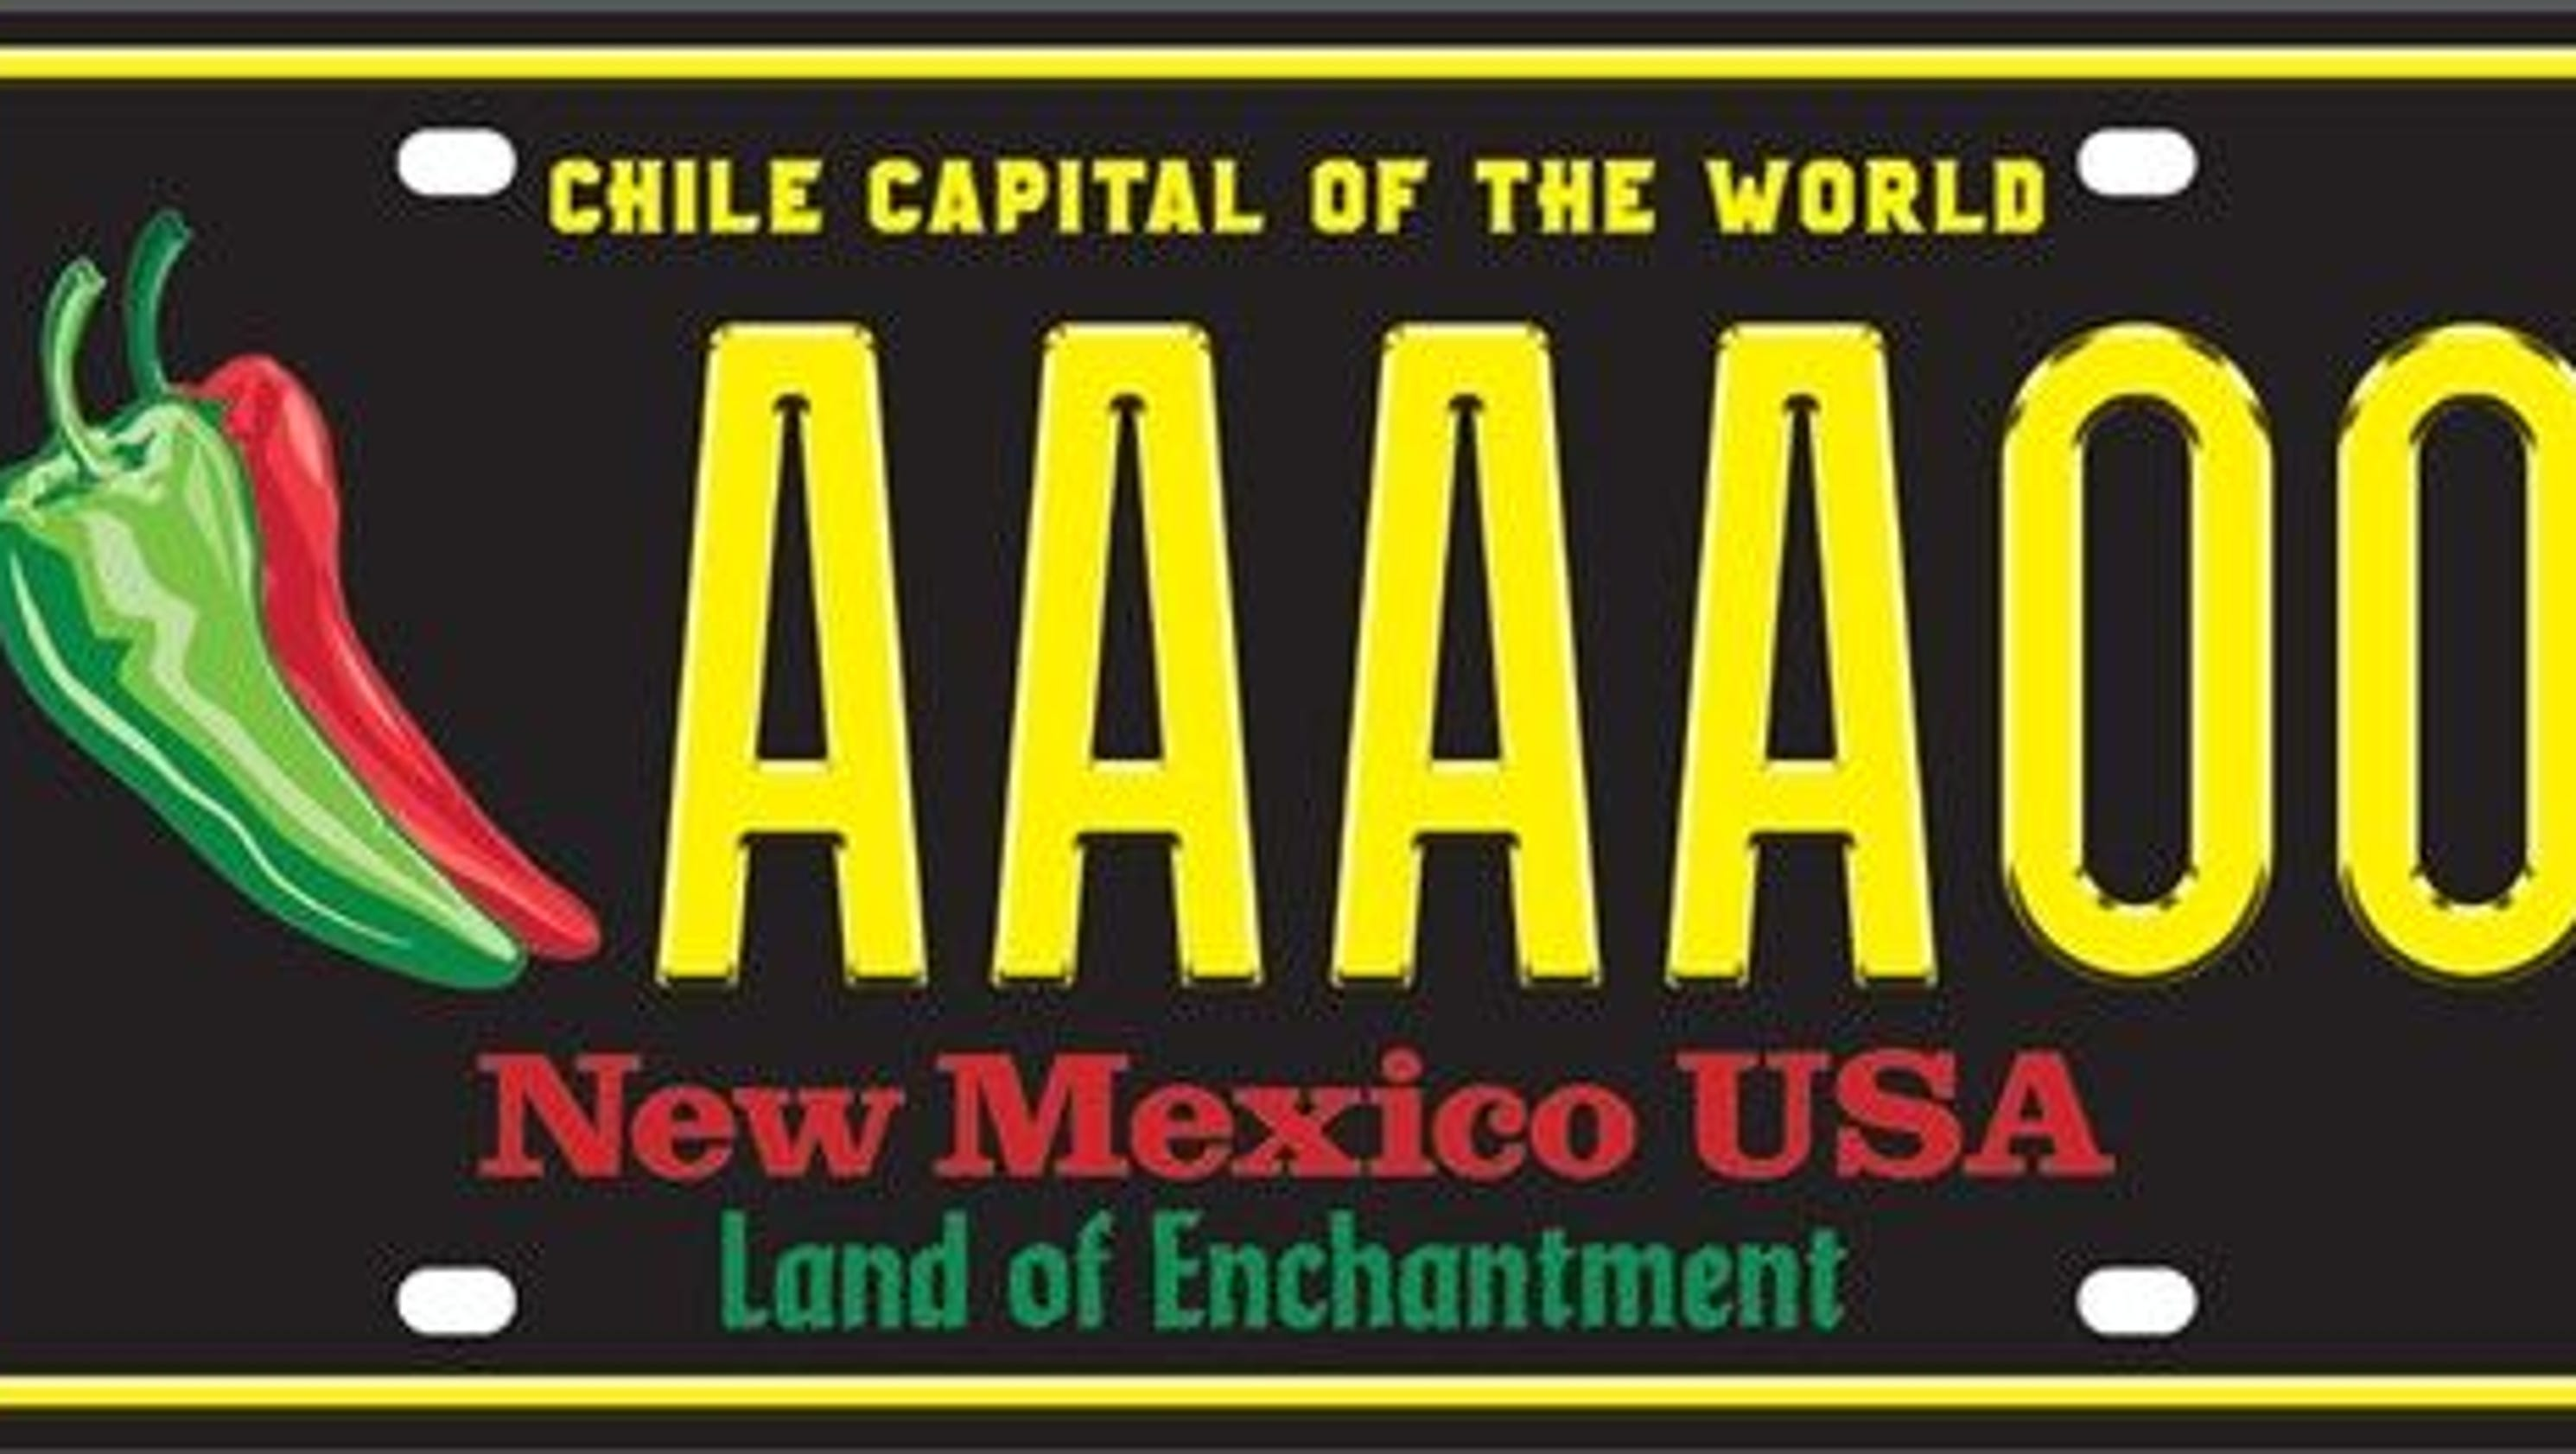 New mexico chile capital license plate named the usas best publicscrutiny Choice Image